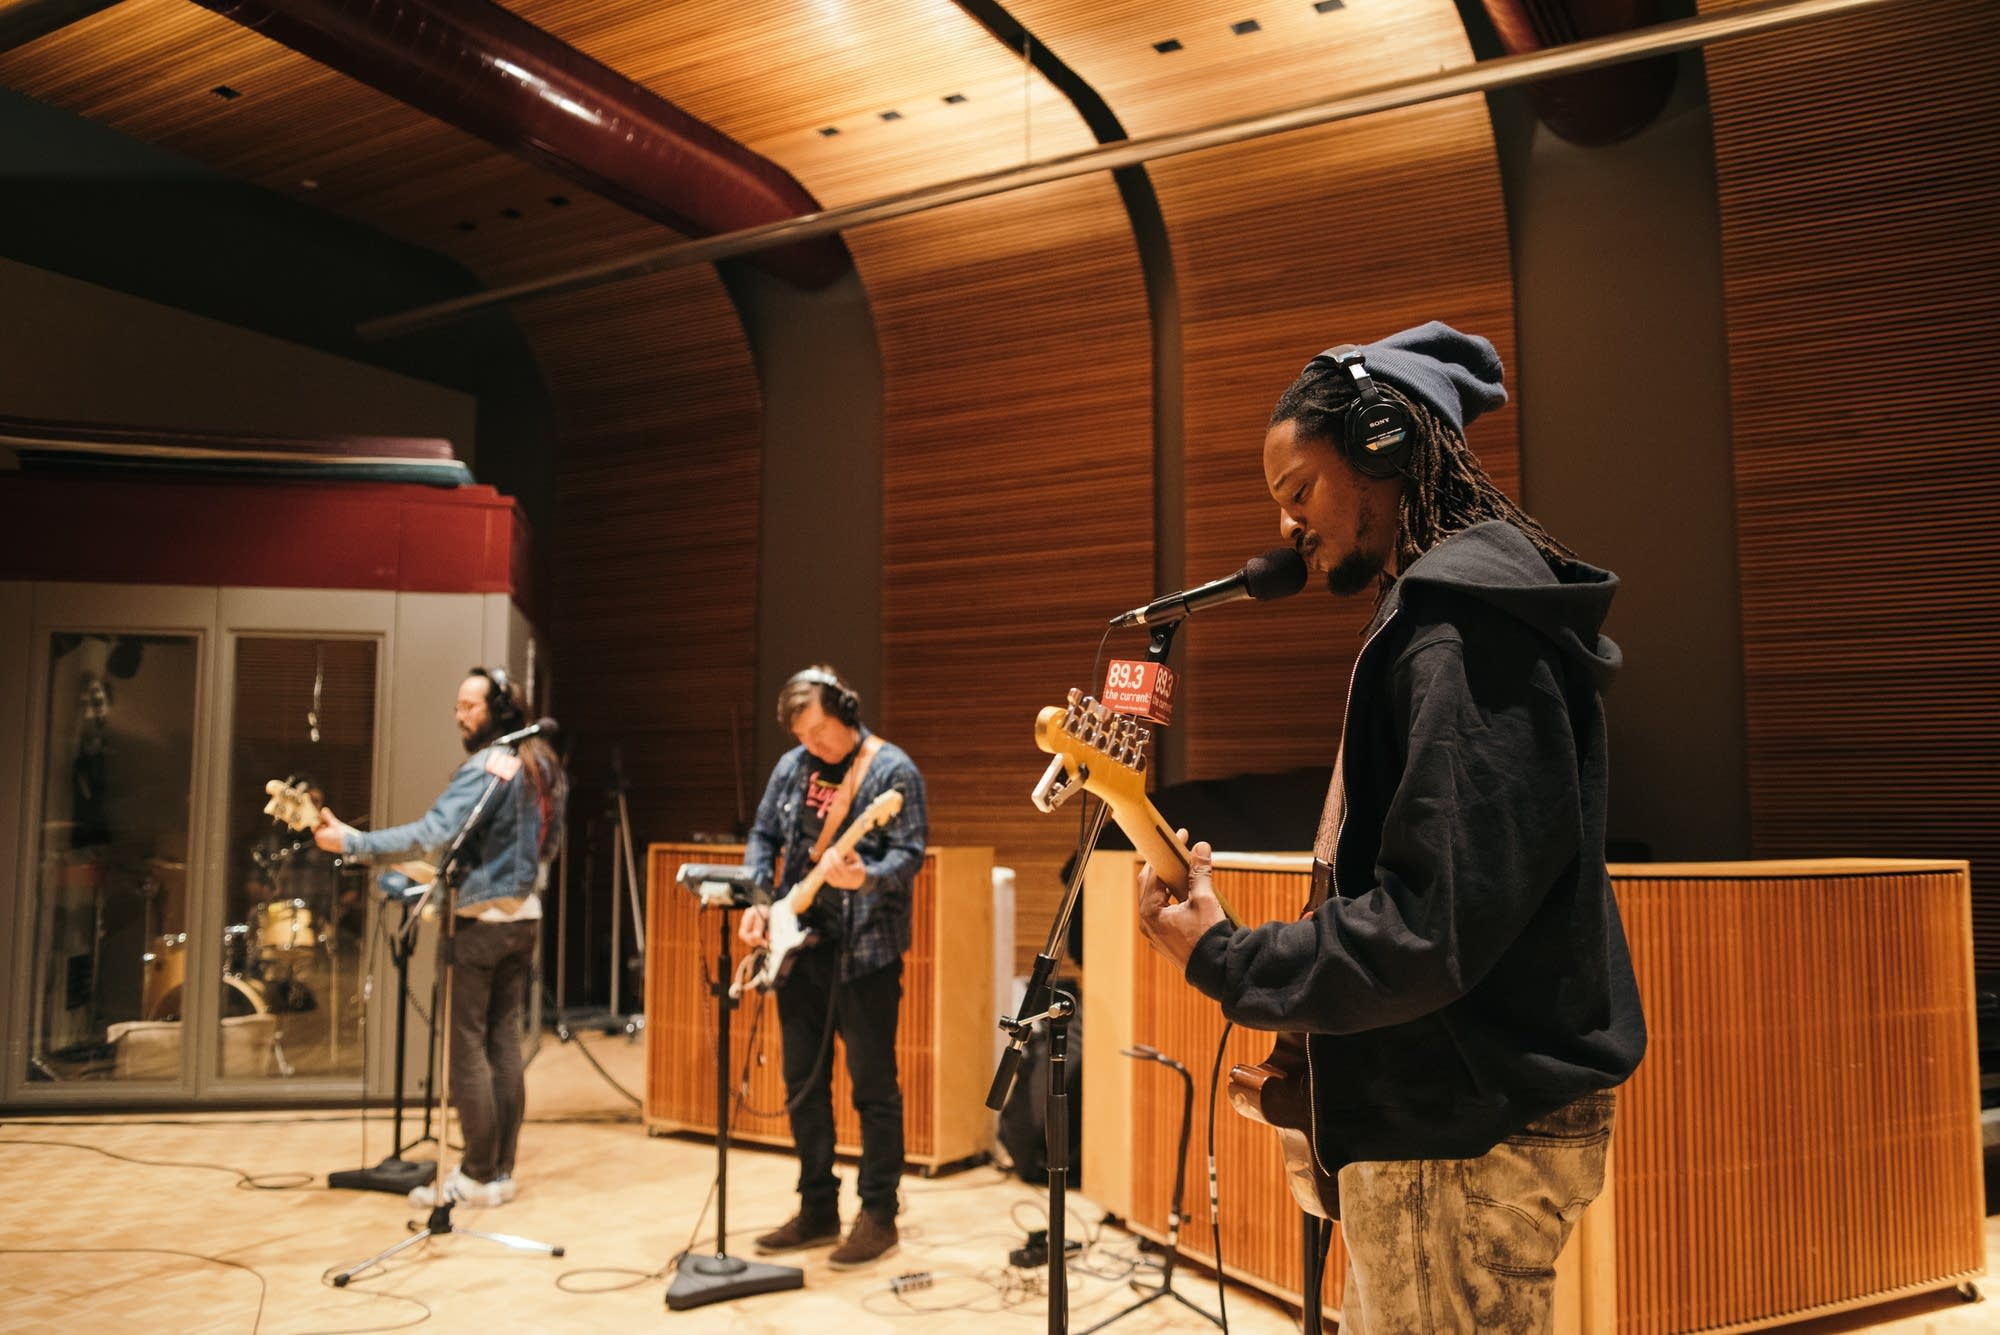 Black Joe Lewis and the Honeybears perform at The Current